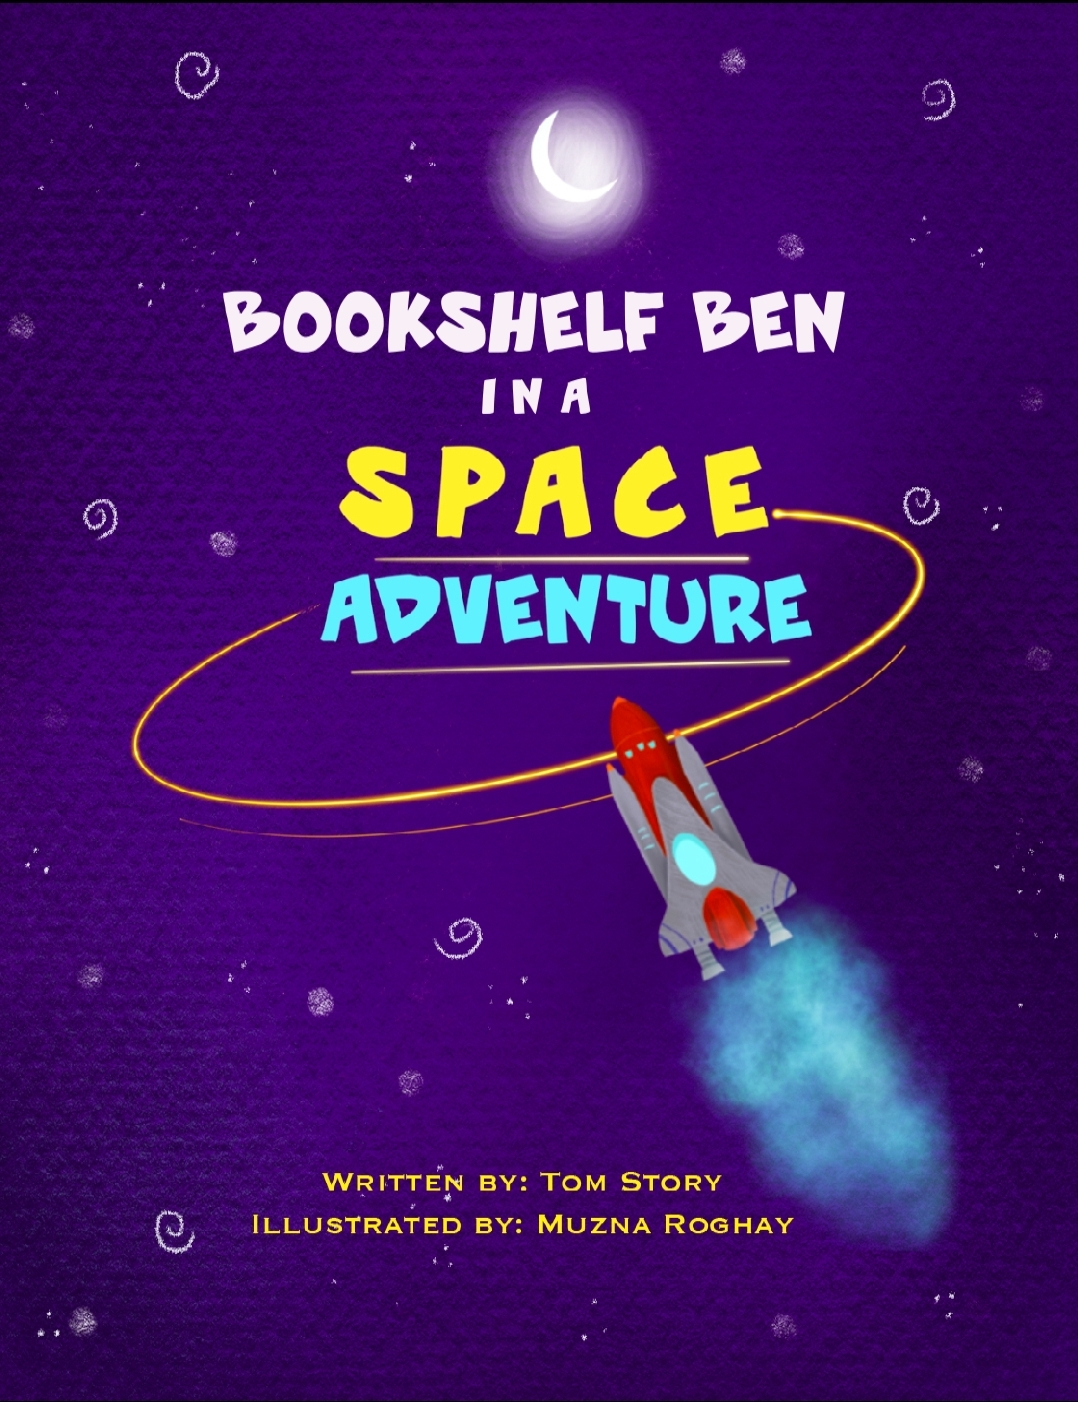 Bookshelf Ben in a Space Adventure